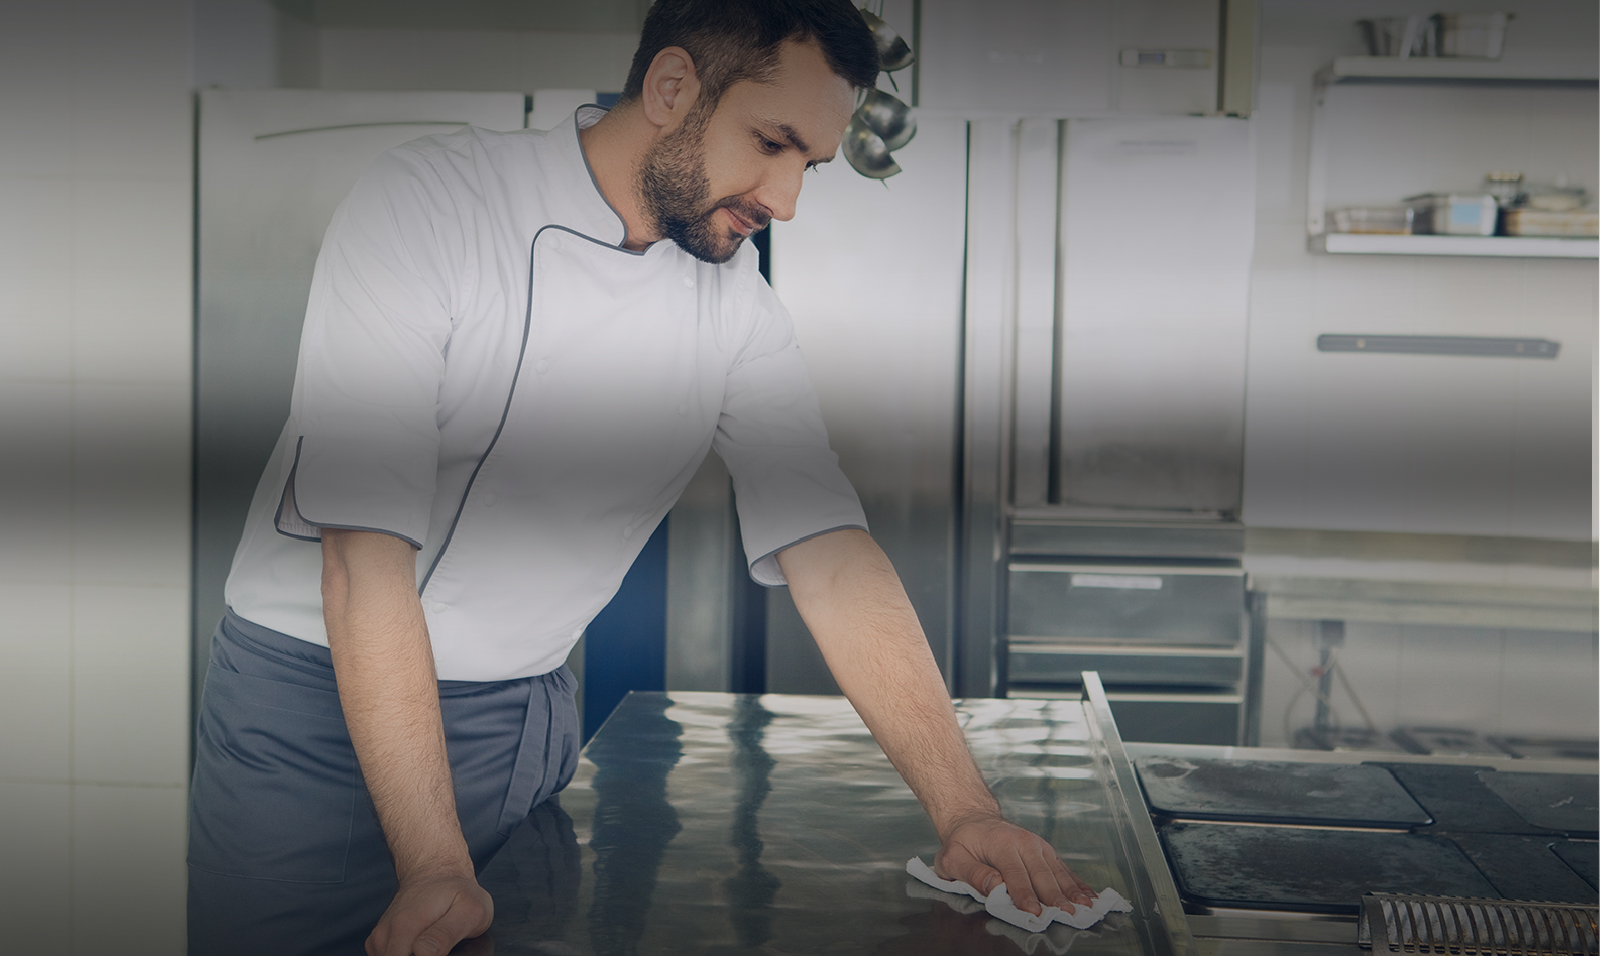 Chef cleaning a work space in the kitchen with a cloth